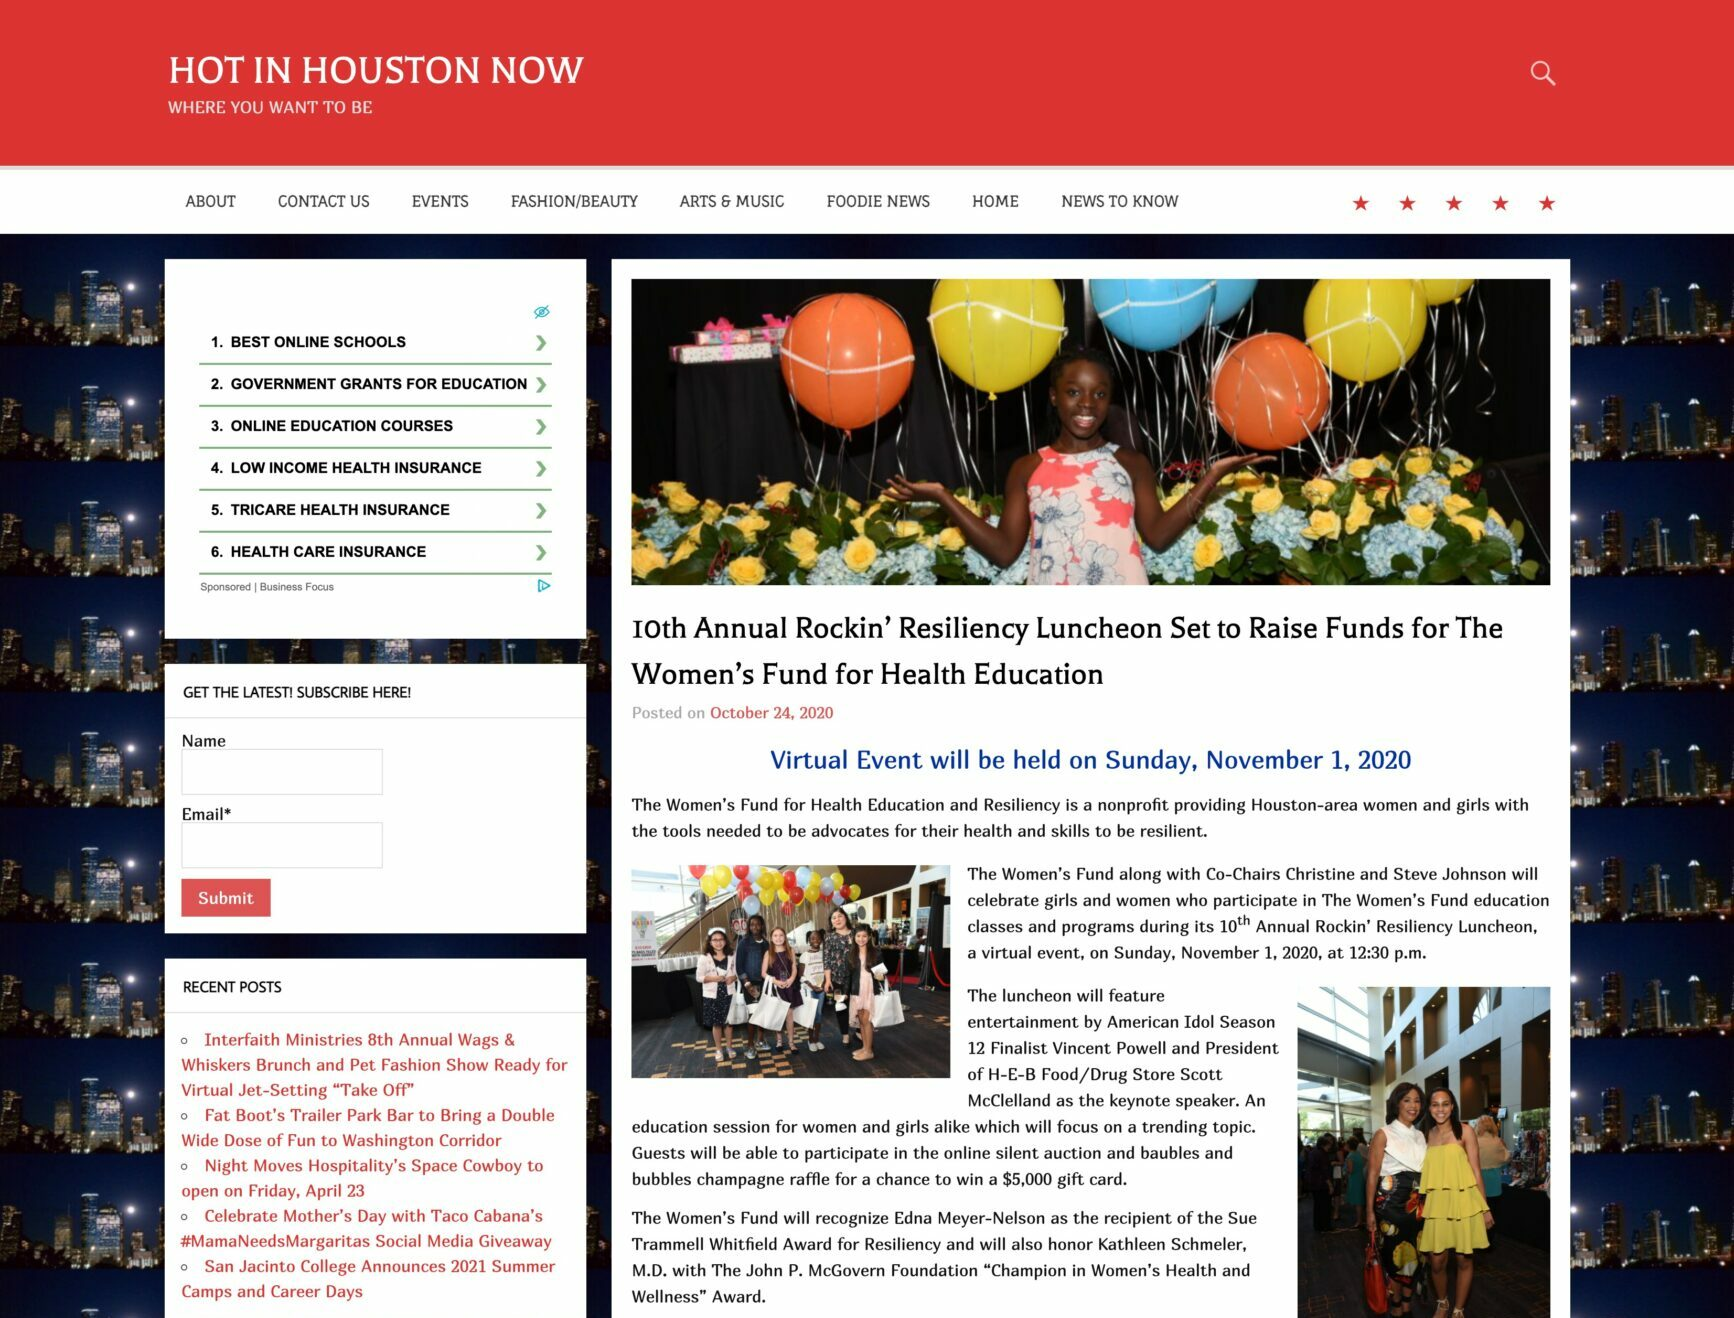 Screenshot of 4. Hot in Houston Now, 10th Annual Rockin' Resiliency Luncheon